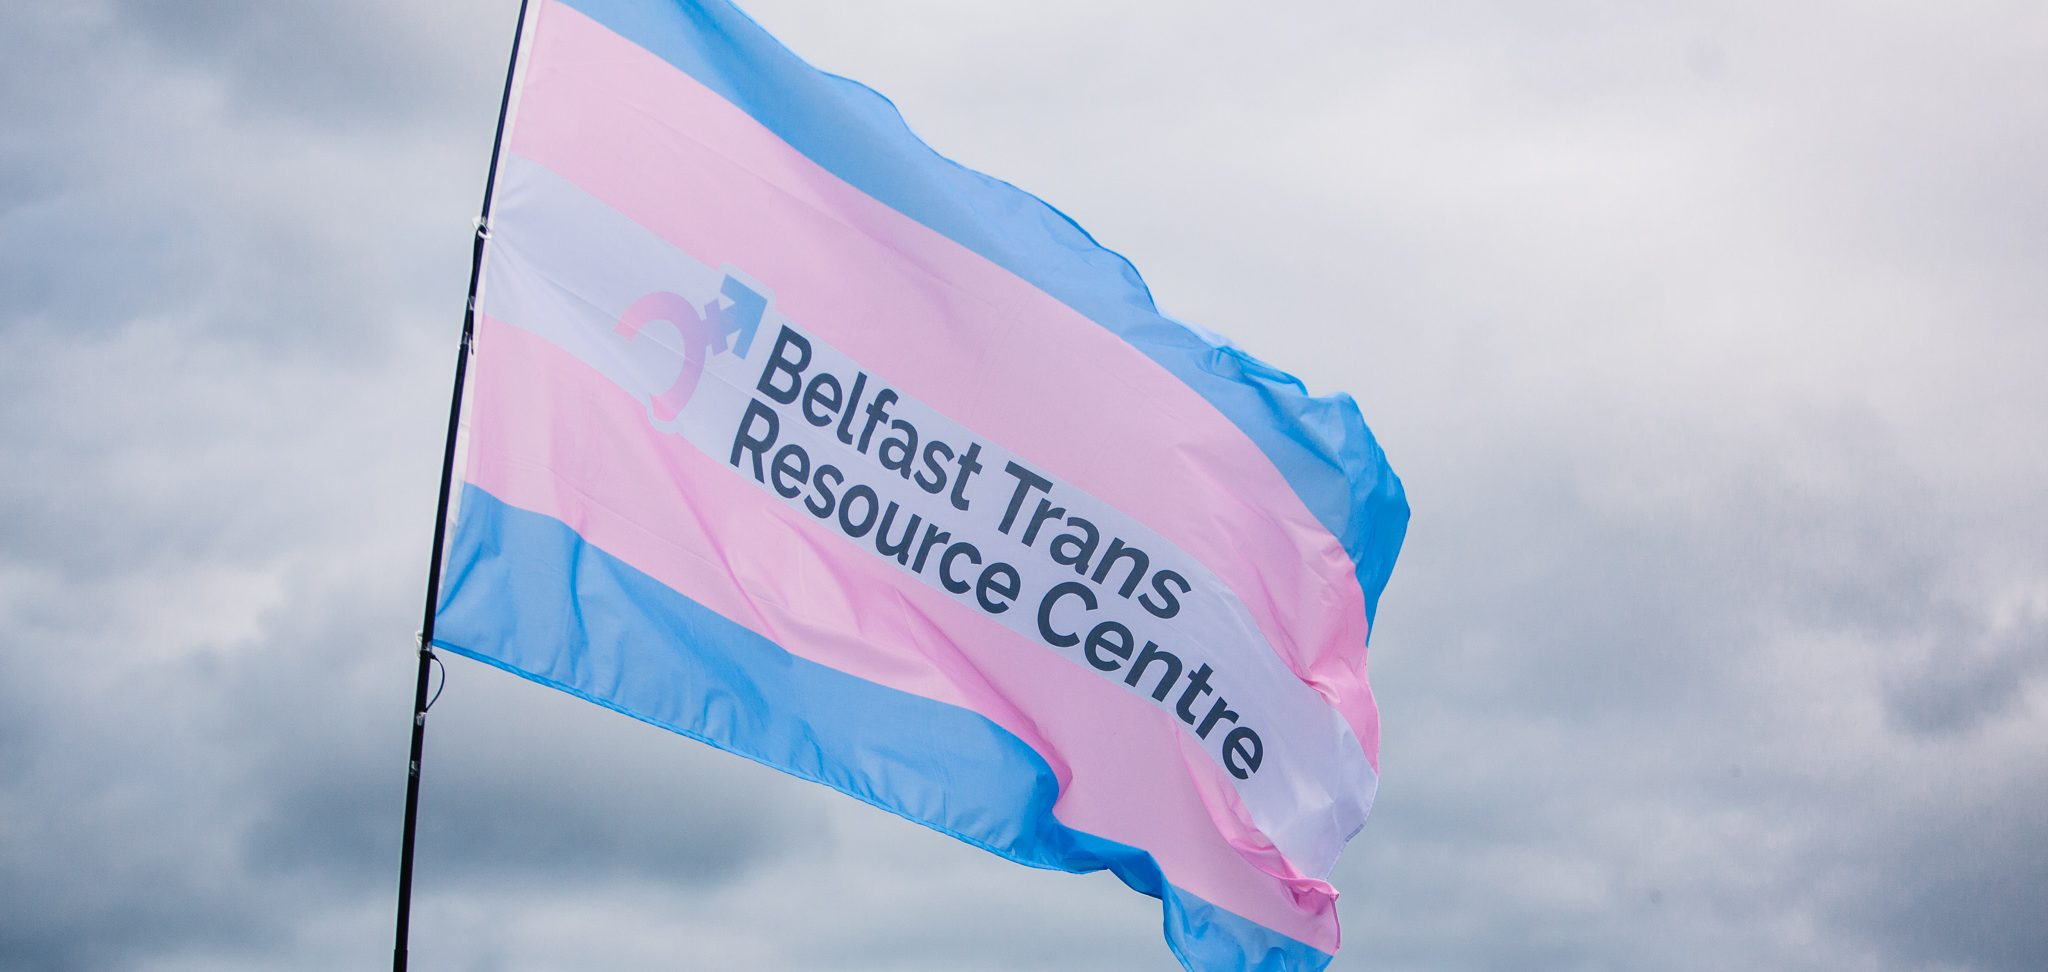 A large flying trans flag emblazoned with the Belfast Trans Resource Centre logo.